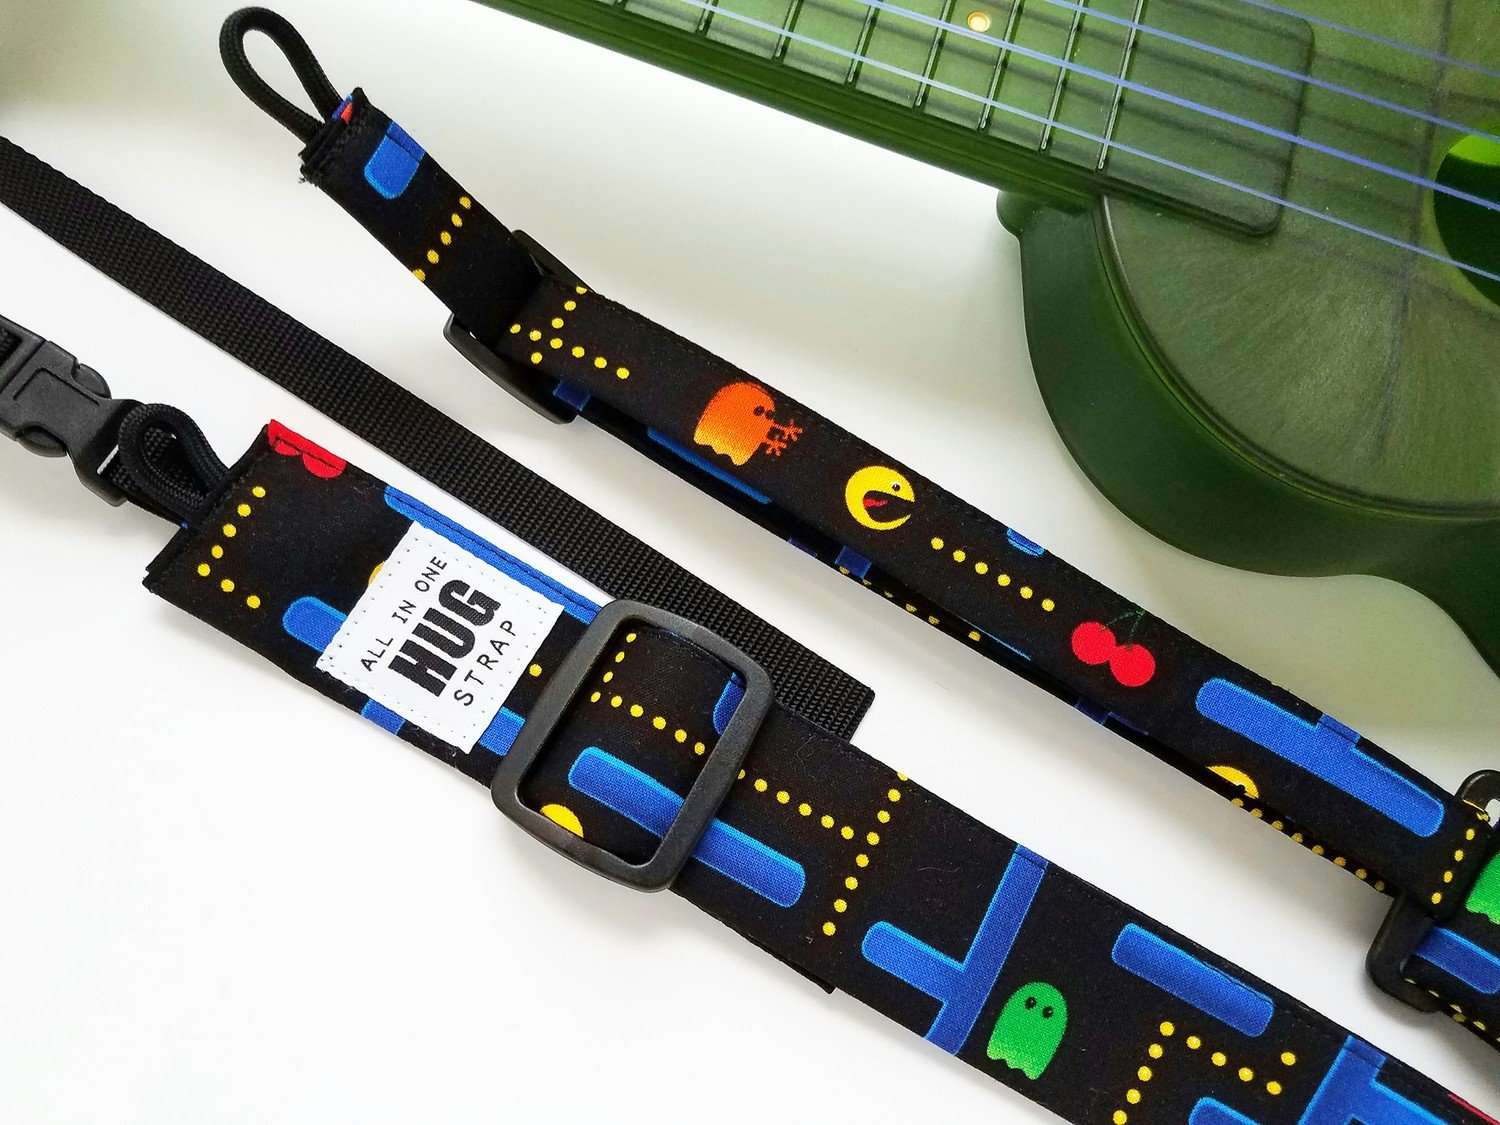 Ukulele Strap ALL in ONE Hug Strap - Arcade Games